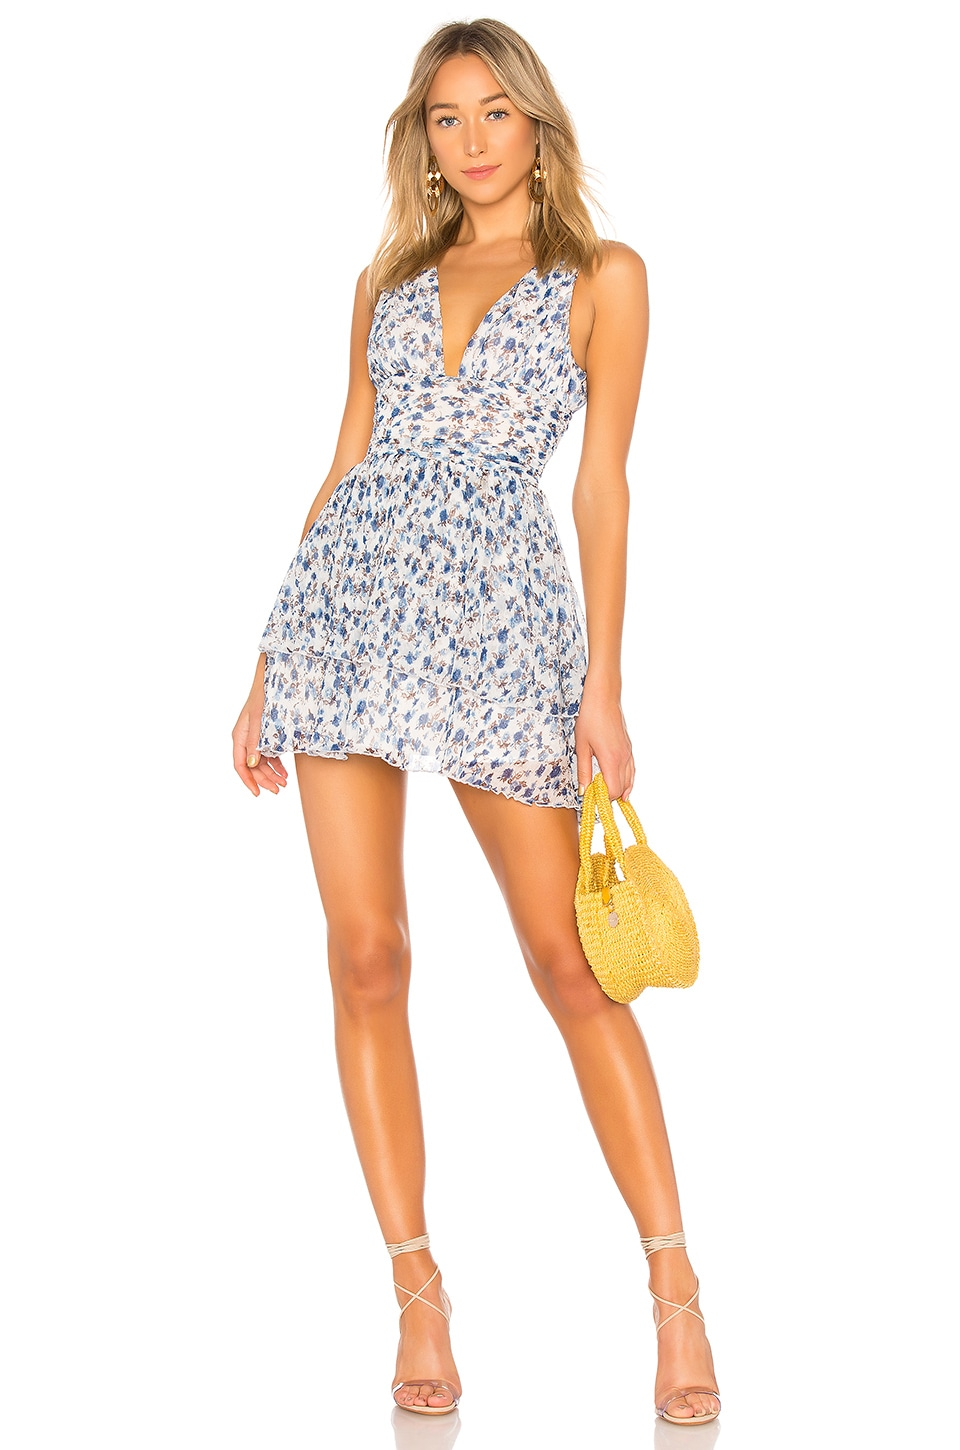 MAJORELLE Dora Mini Dress in Misty Blue